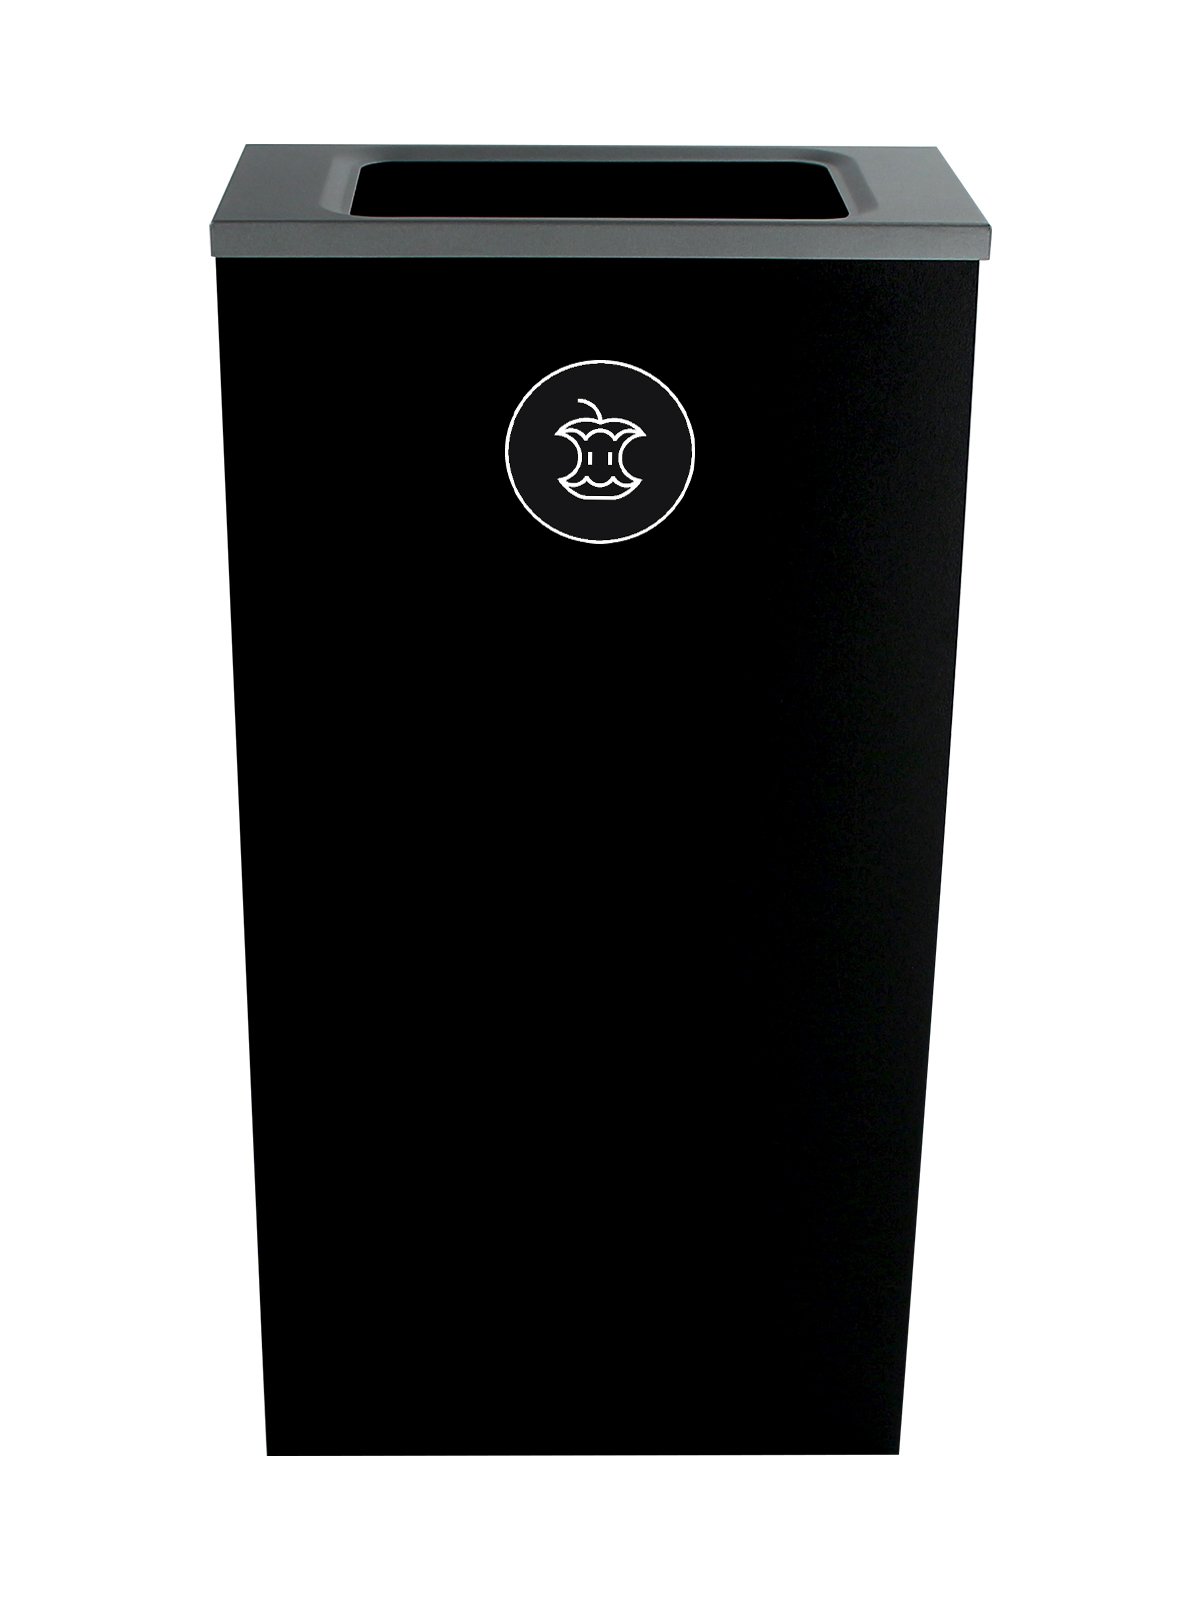 SPECTRUM - Single - Cube Slim - Organics - Full - Black